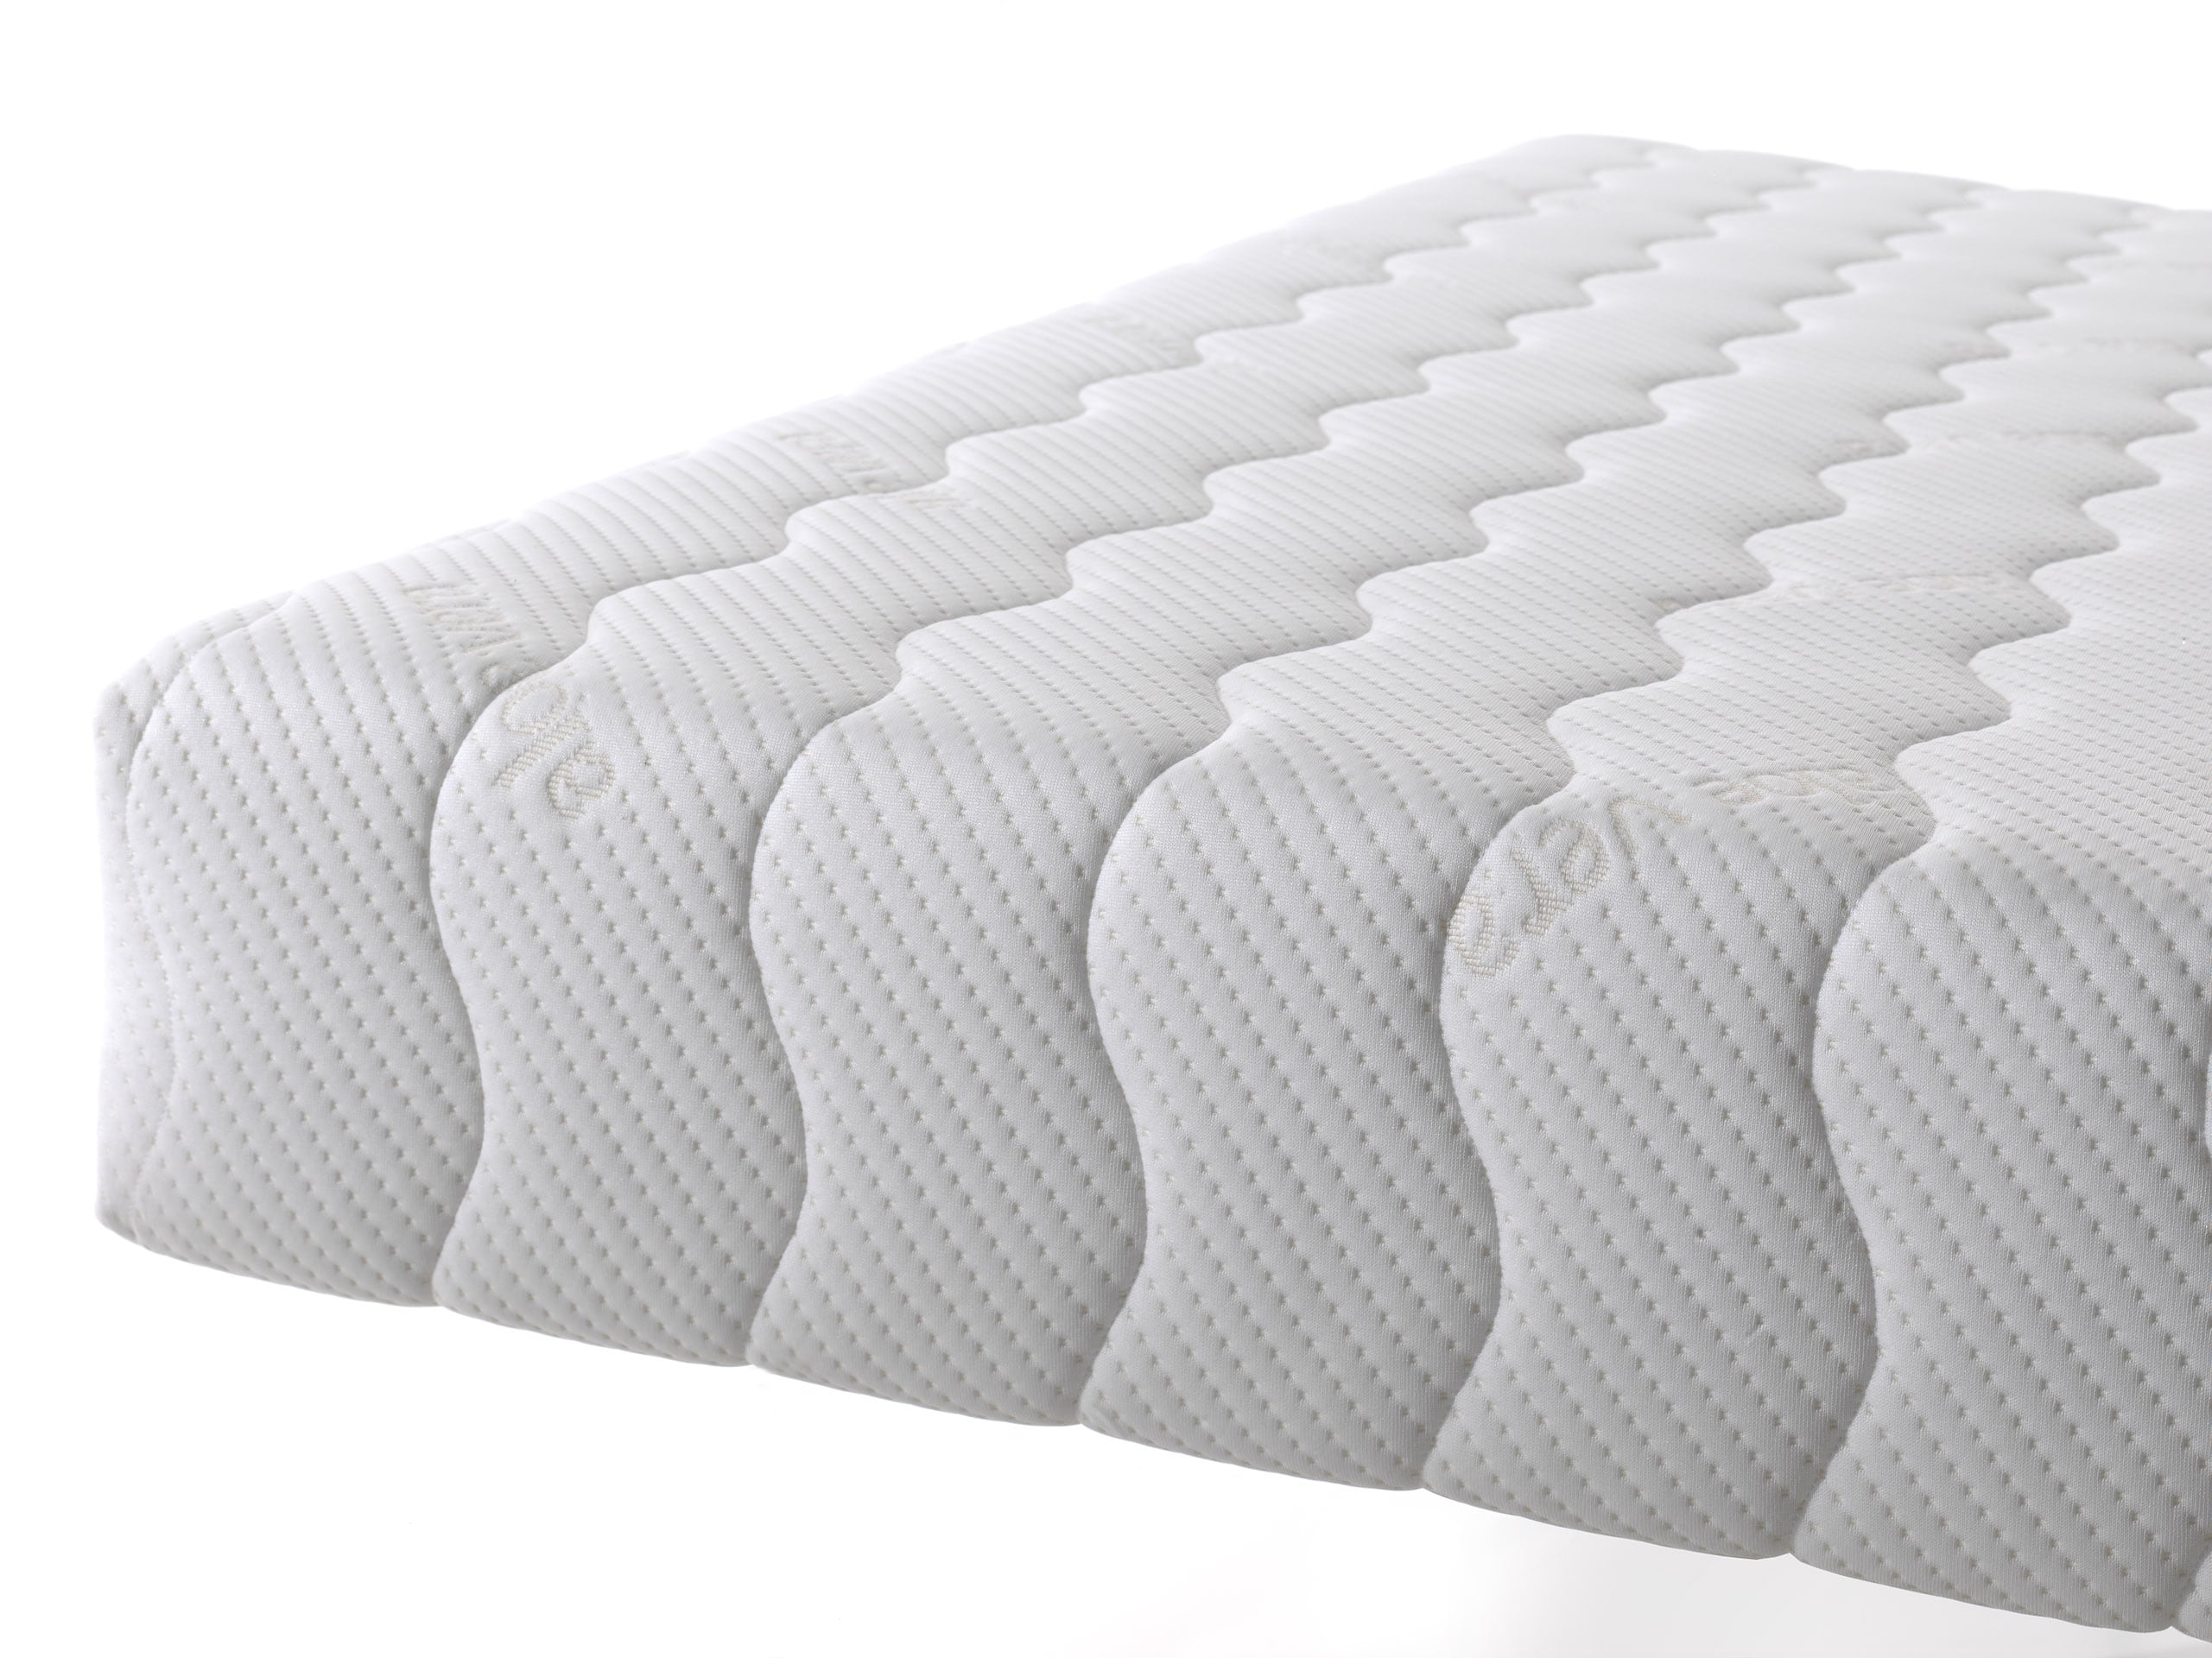 De Beste Matrassen Voor De Rug.Medical Pocket Nasa Aloe Vera Matras Droommatras